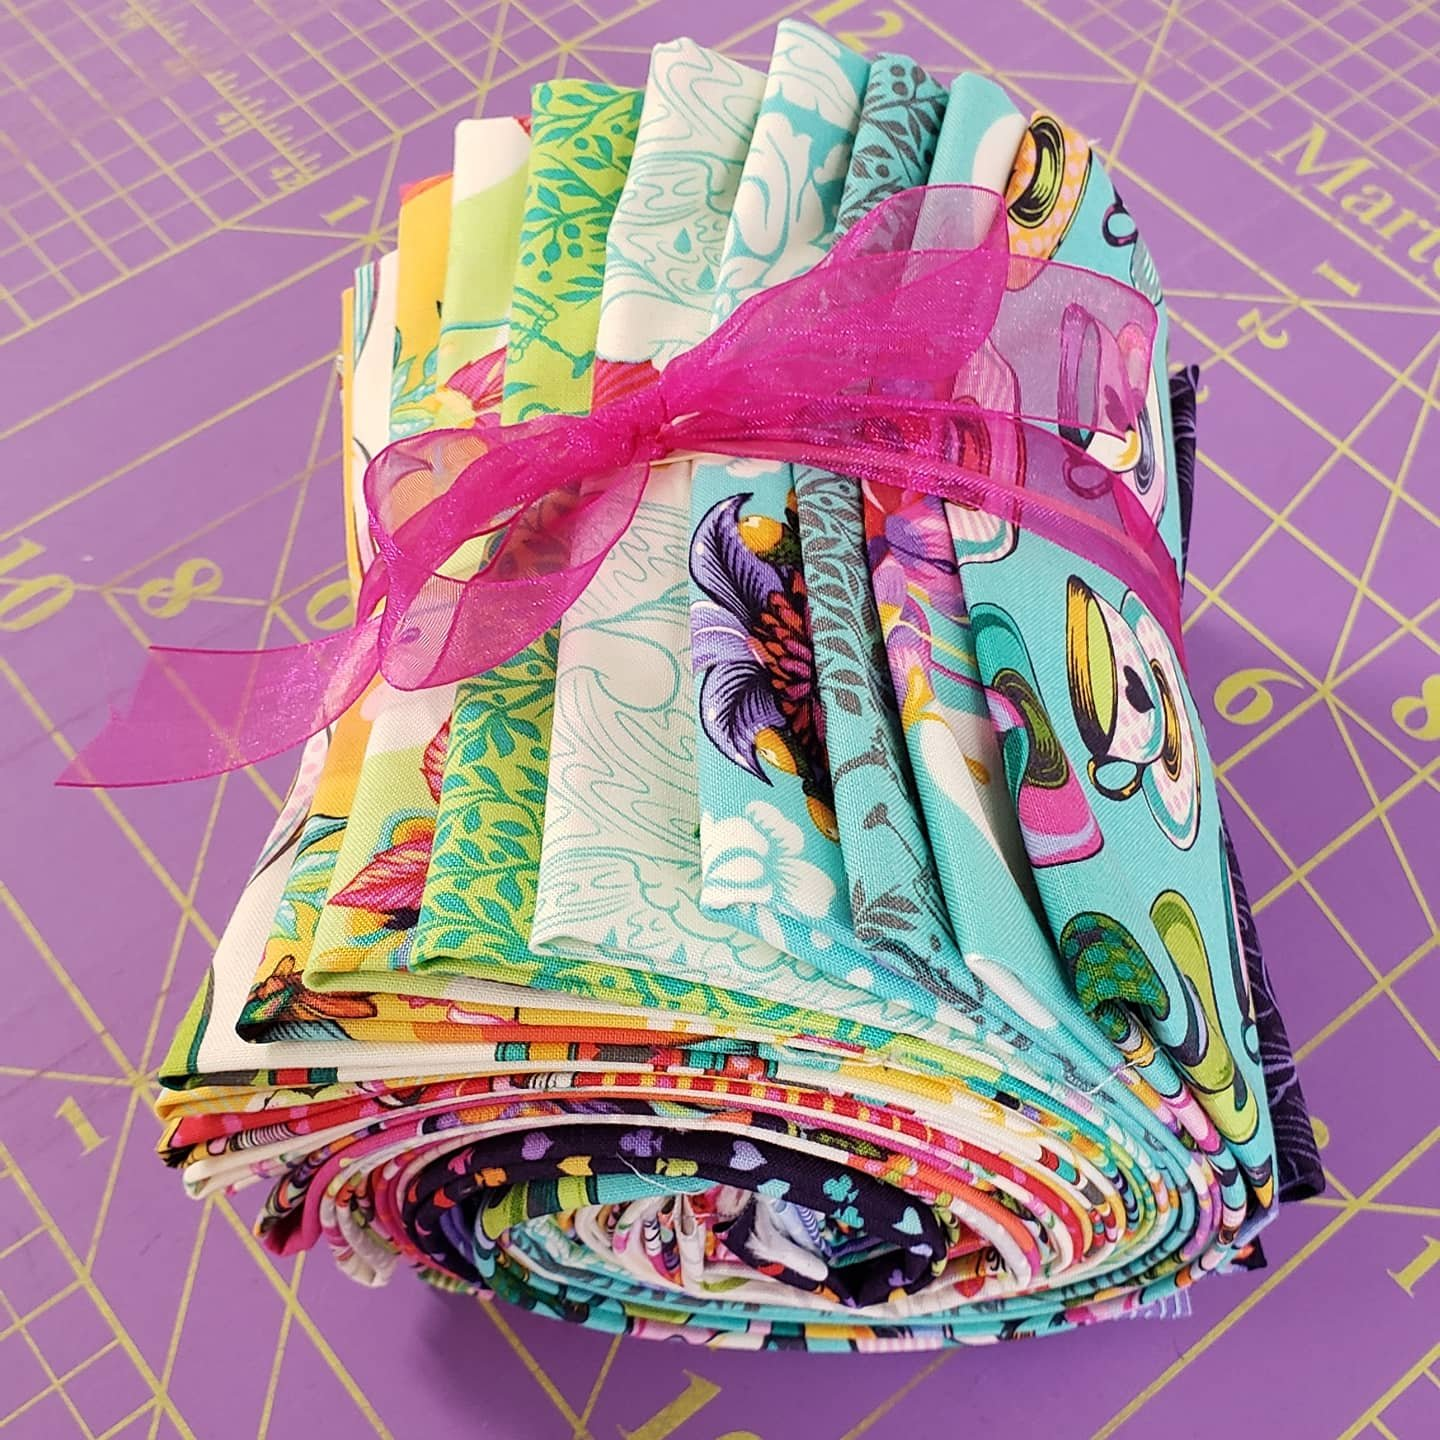 Curiouser & Curiouser - Full Collection Fat Quarter Pack - 25 Pieces